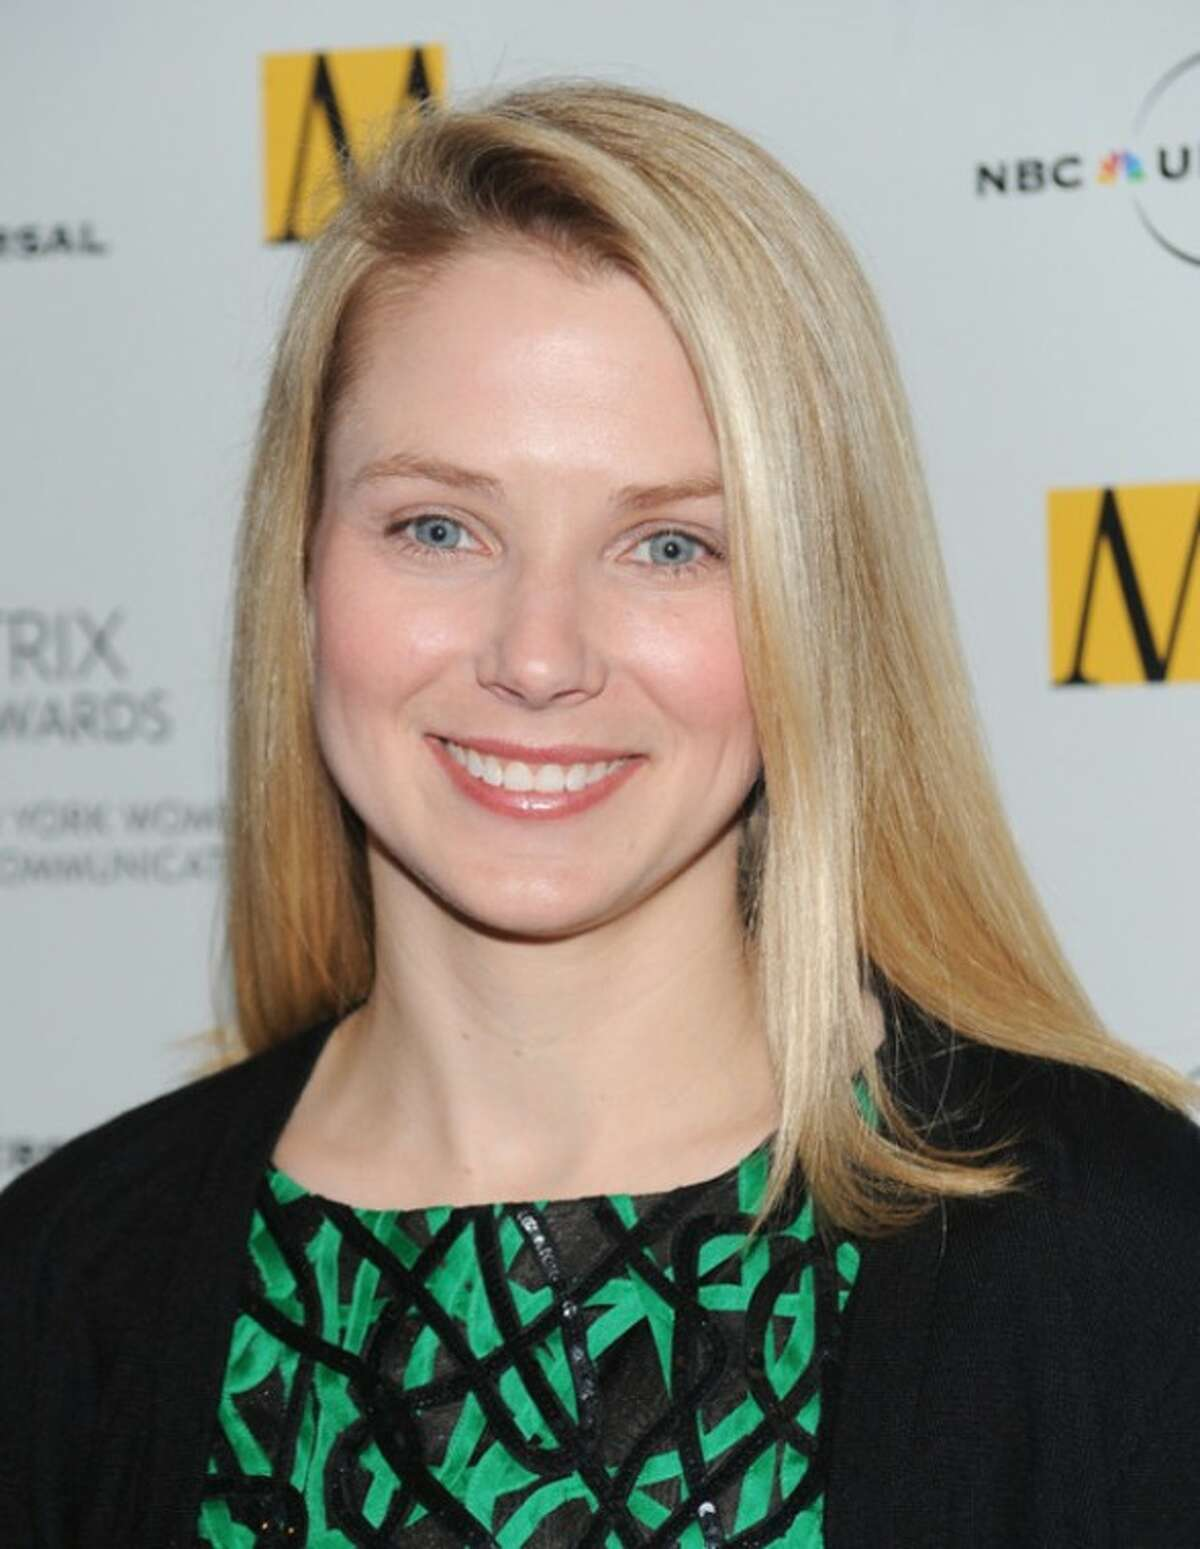 AP Photo/Evan Agostini In this Monday, April 19, 2010 file photo, Google vice president of search products and user experience, Marissa Mayer, attends the 2010 Matrix Awards presented by the New York Women in Communications at the Waldorf-Astoria Hotel in New York.